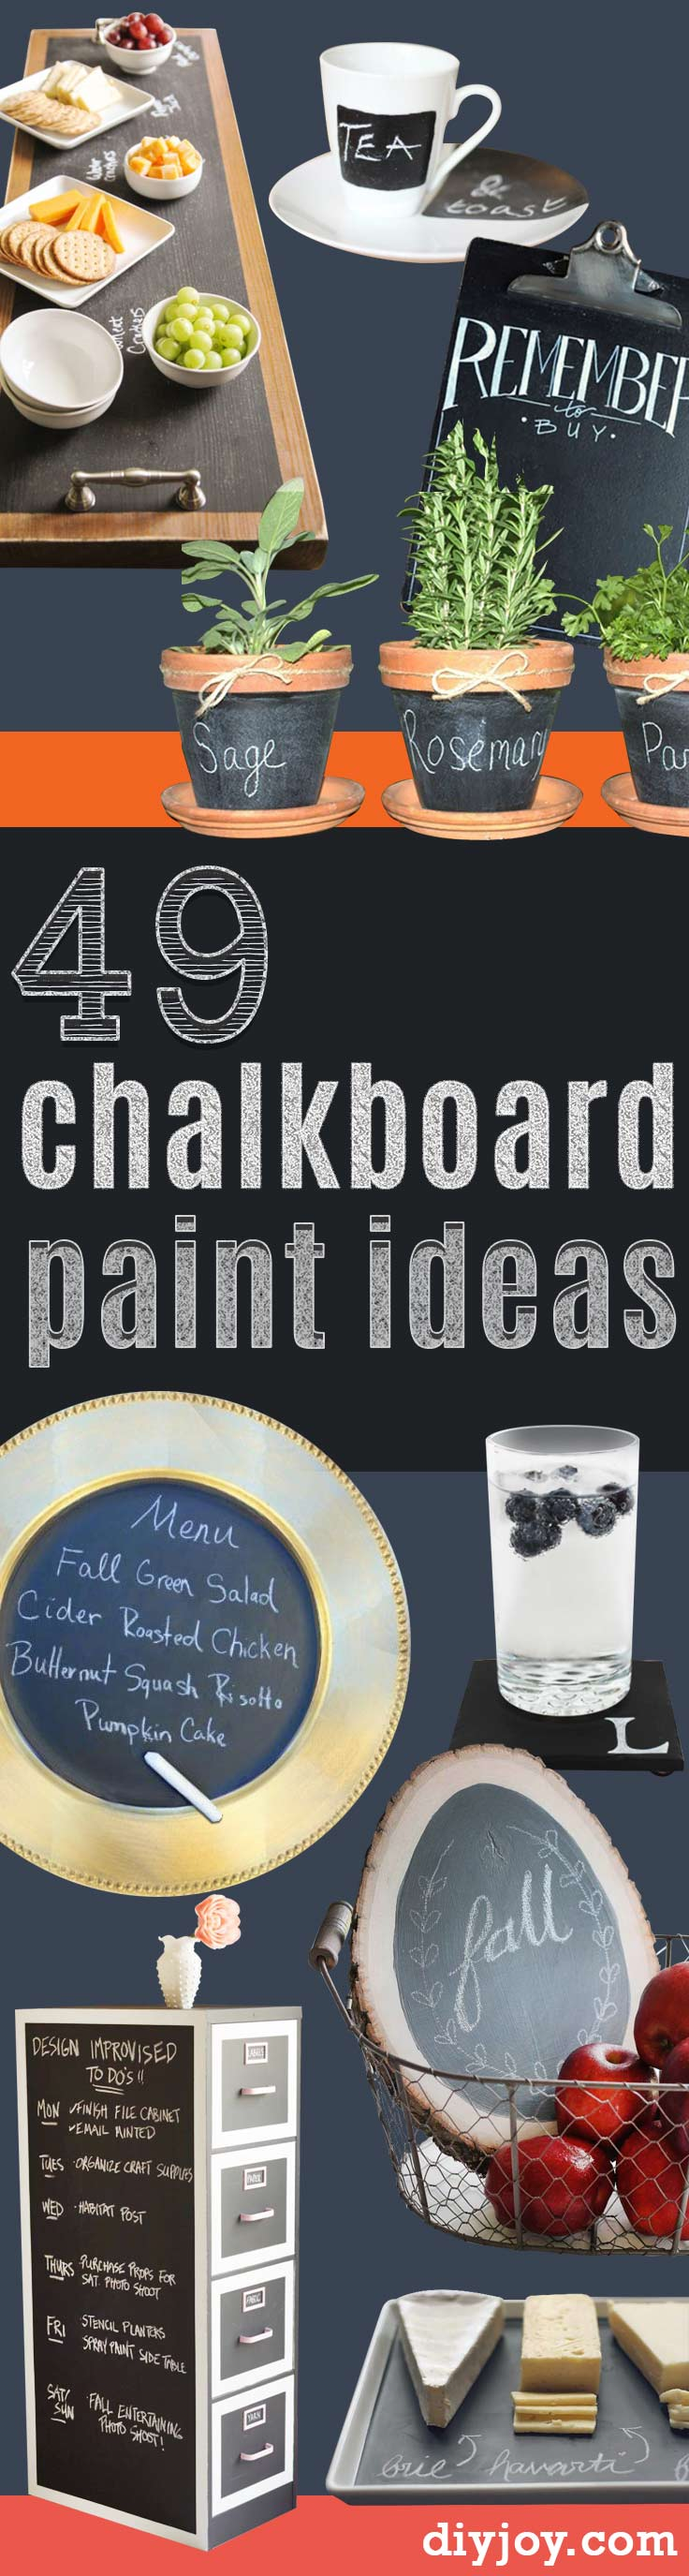 Diy Chalkboard Paint Ideas For Furniture And Decor Diy Joy